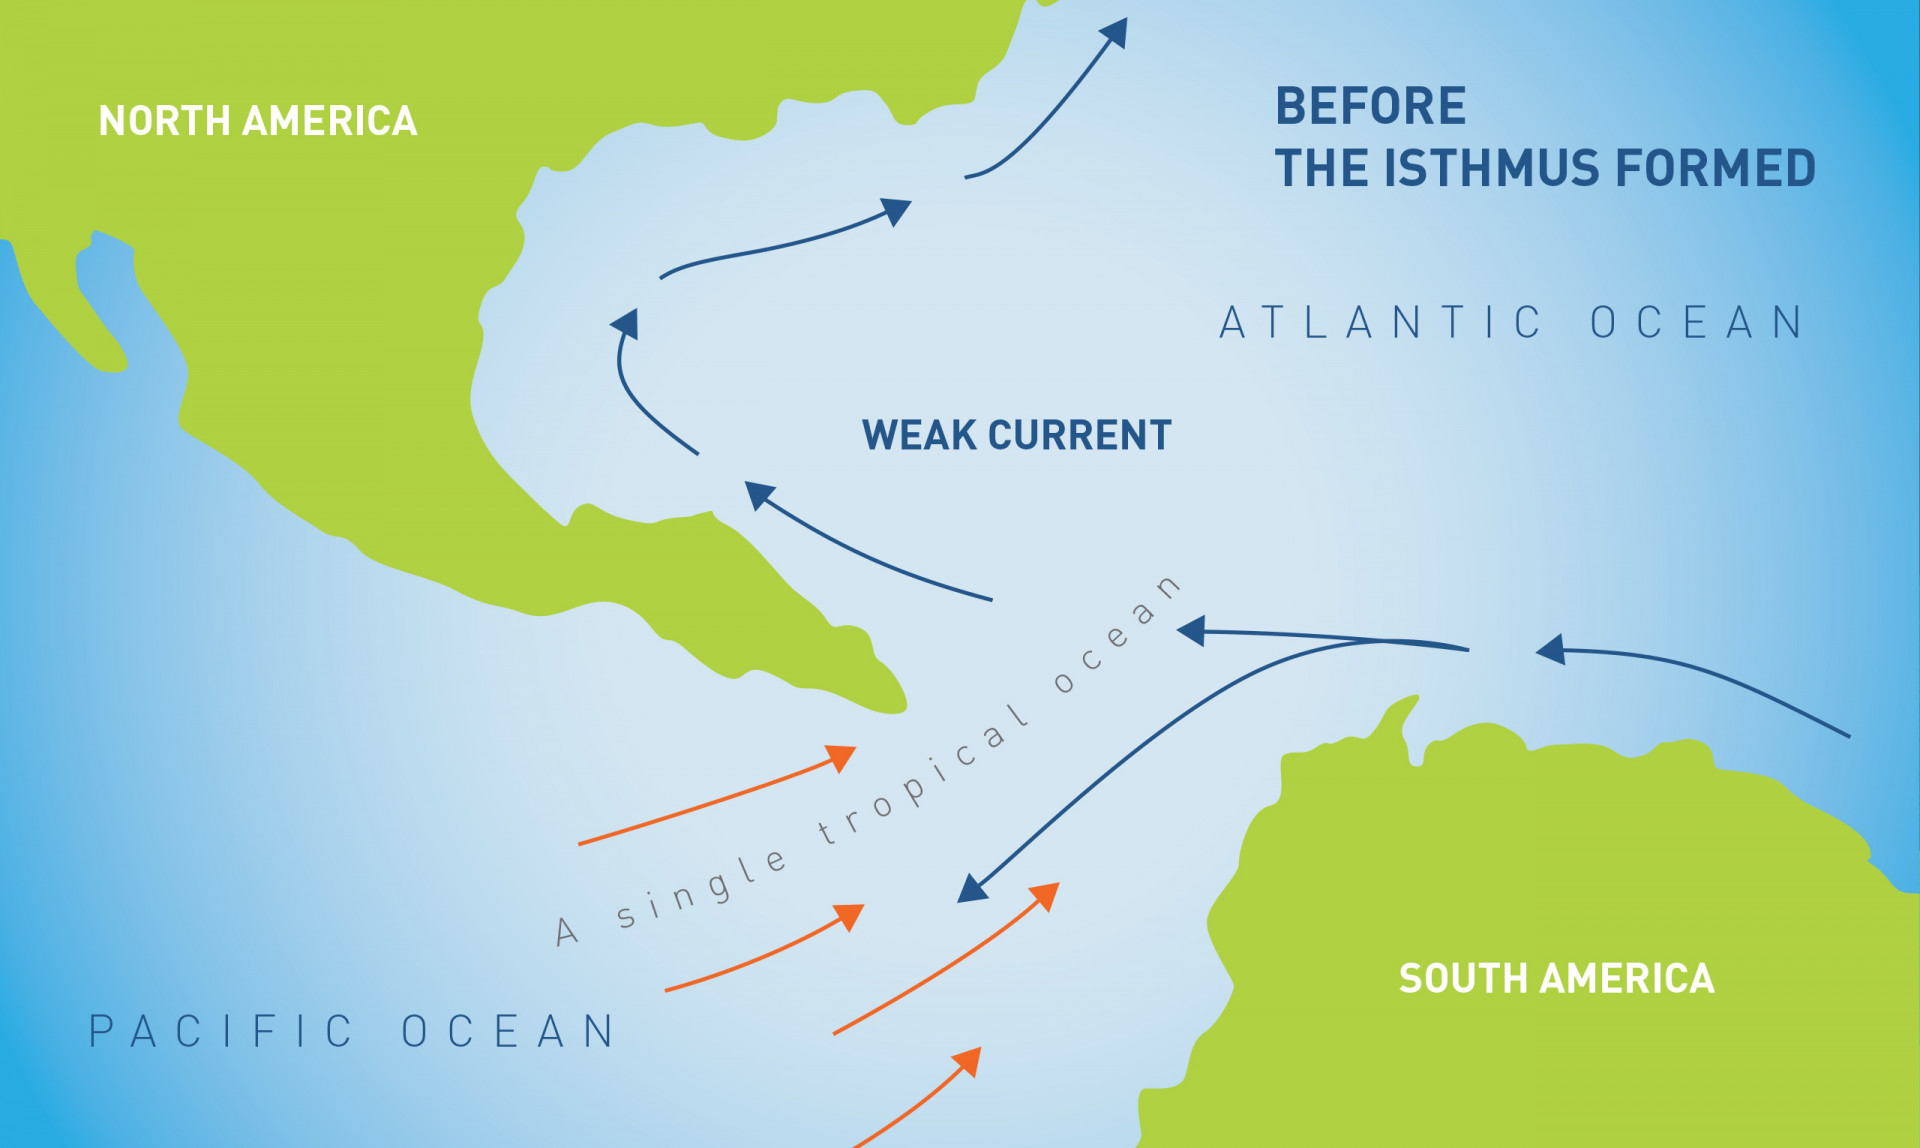 Before the Isthmus of Panama formed there was a single tropical ocean between North and South America that had relatively uniform conditions of temperature and nutrients